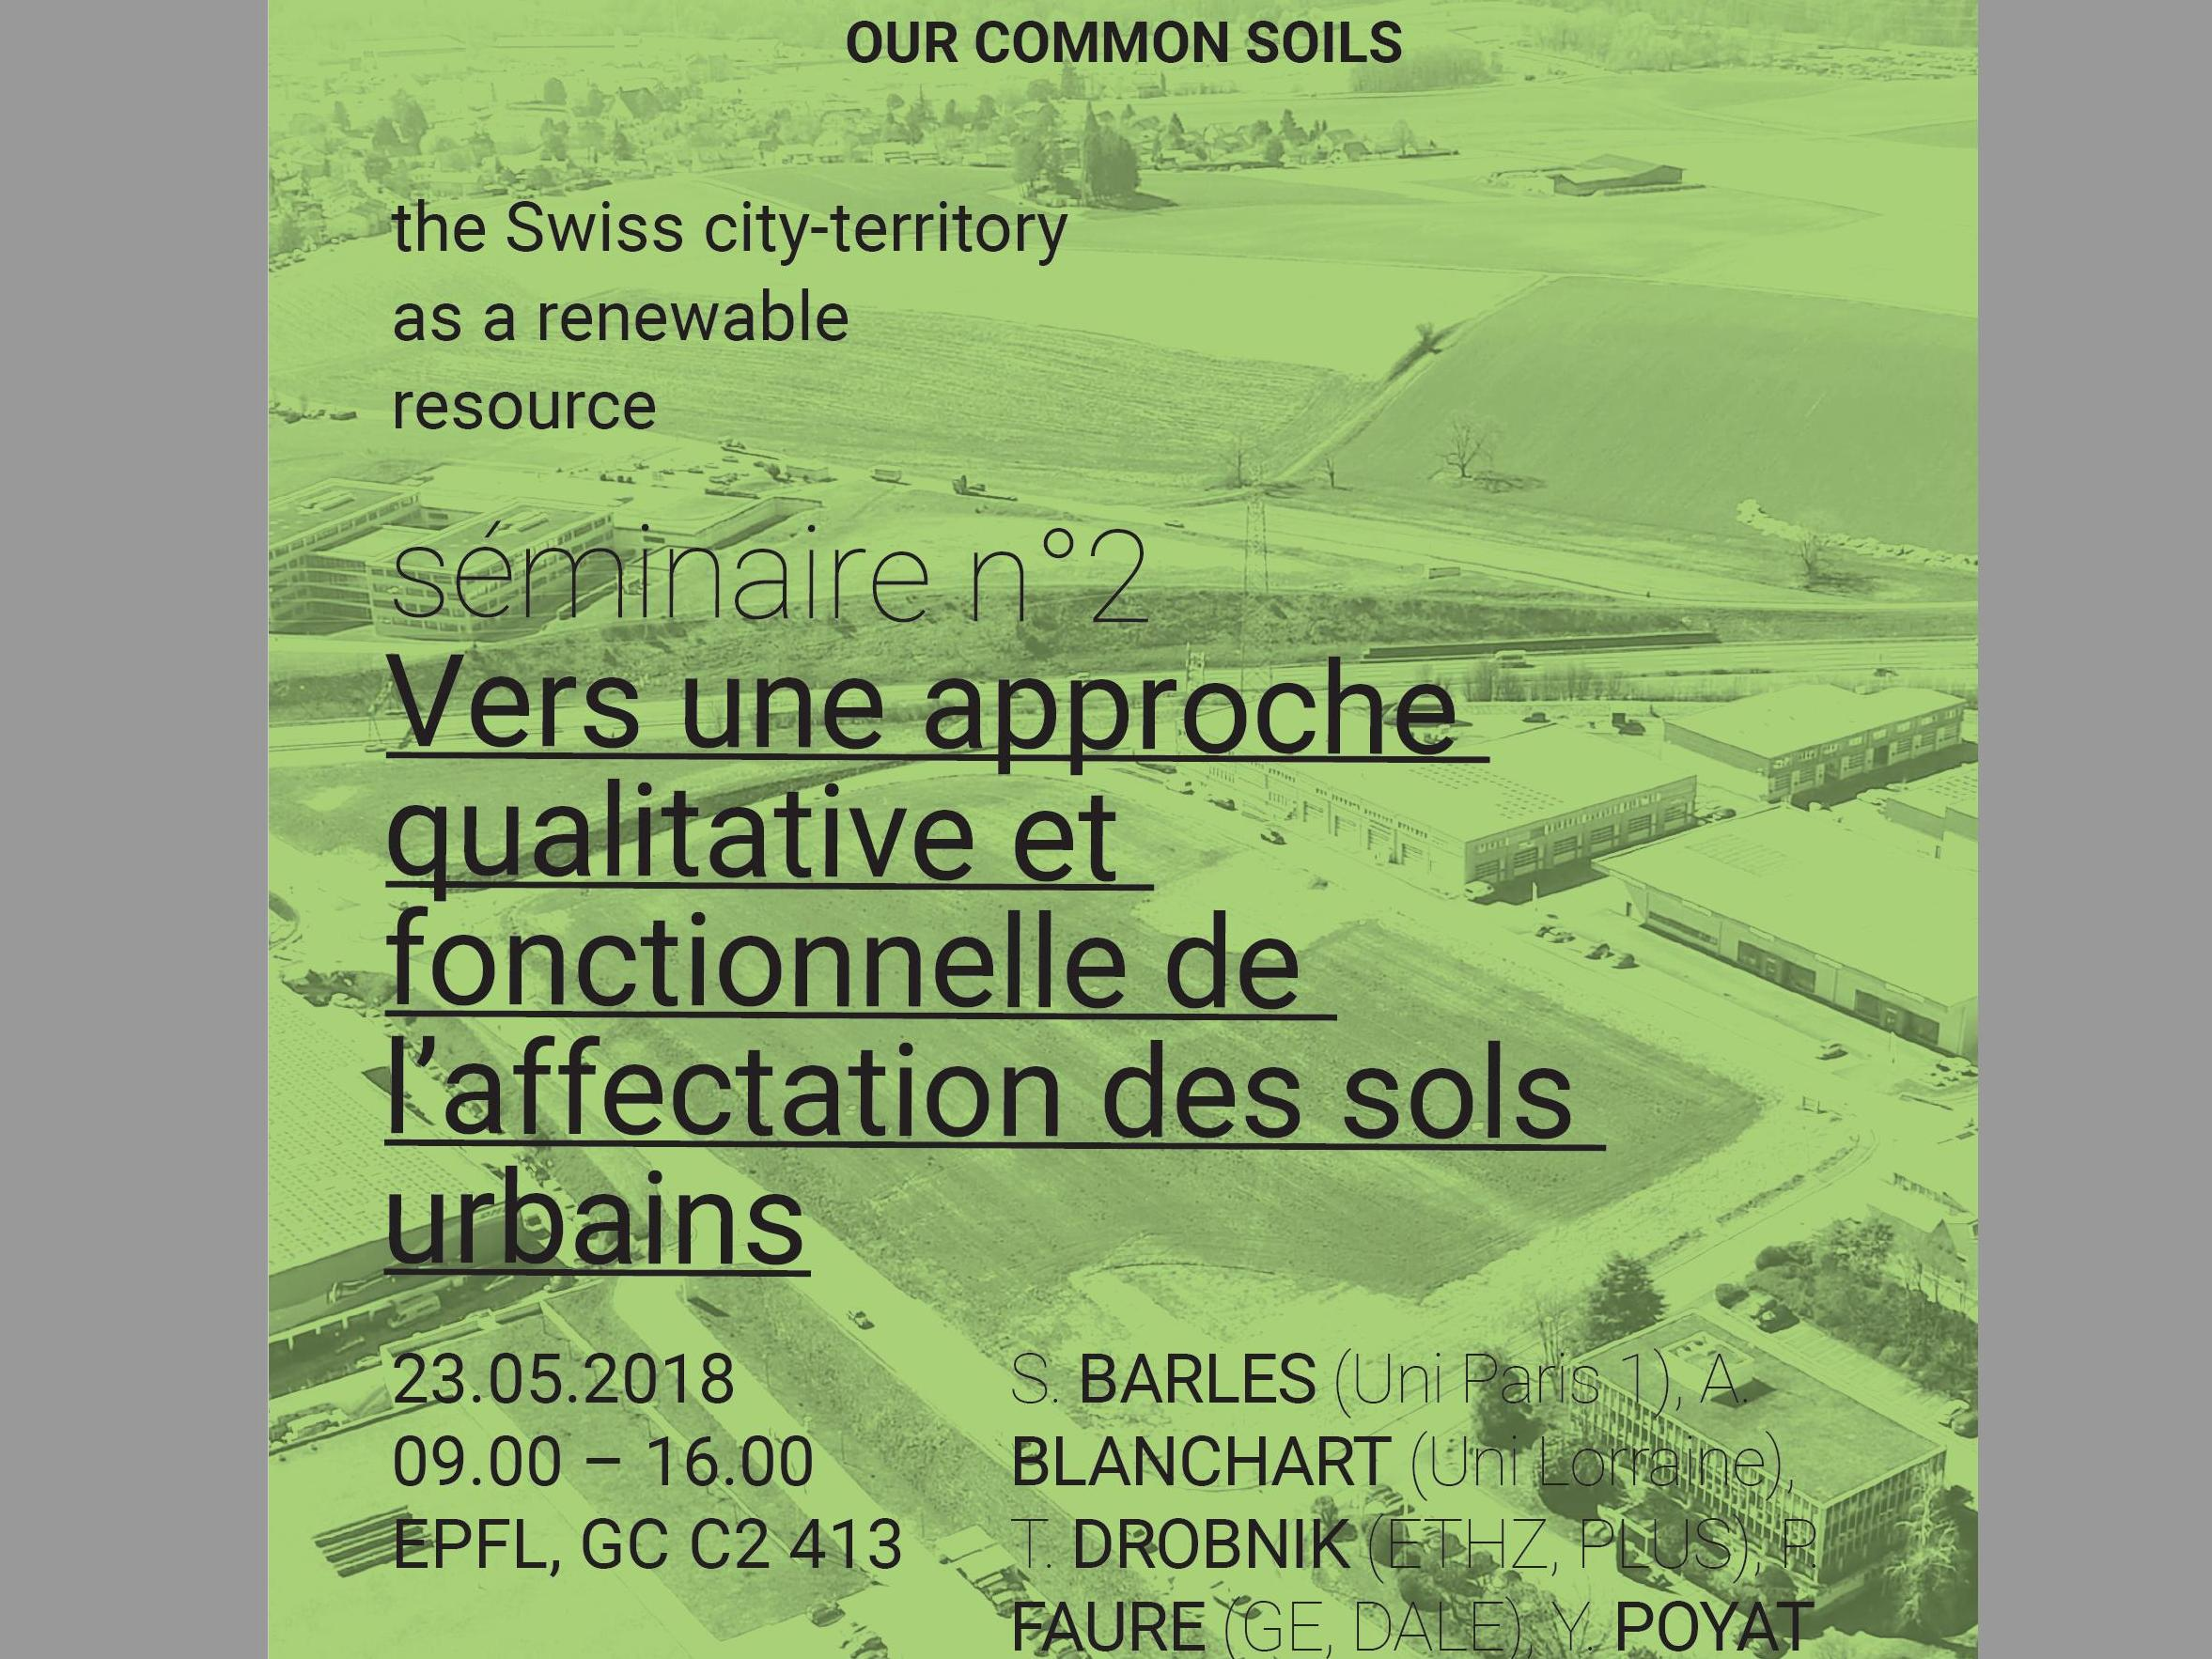 The Swiss city-territory as a renewable resource